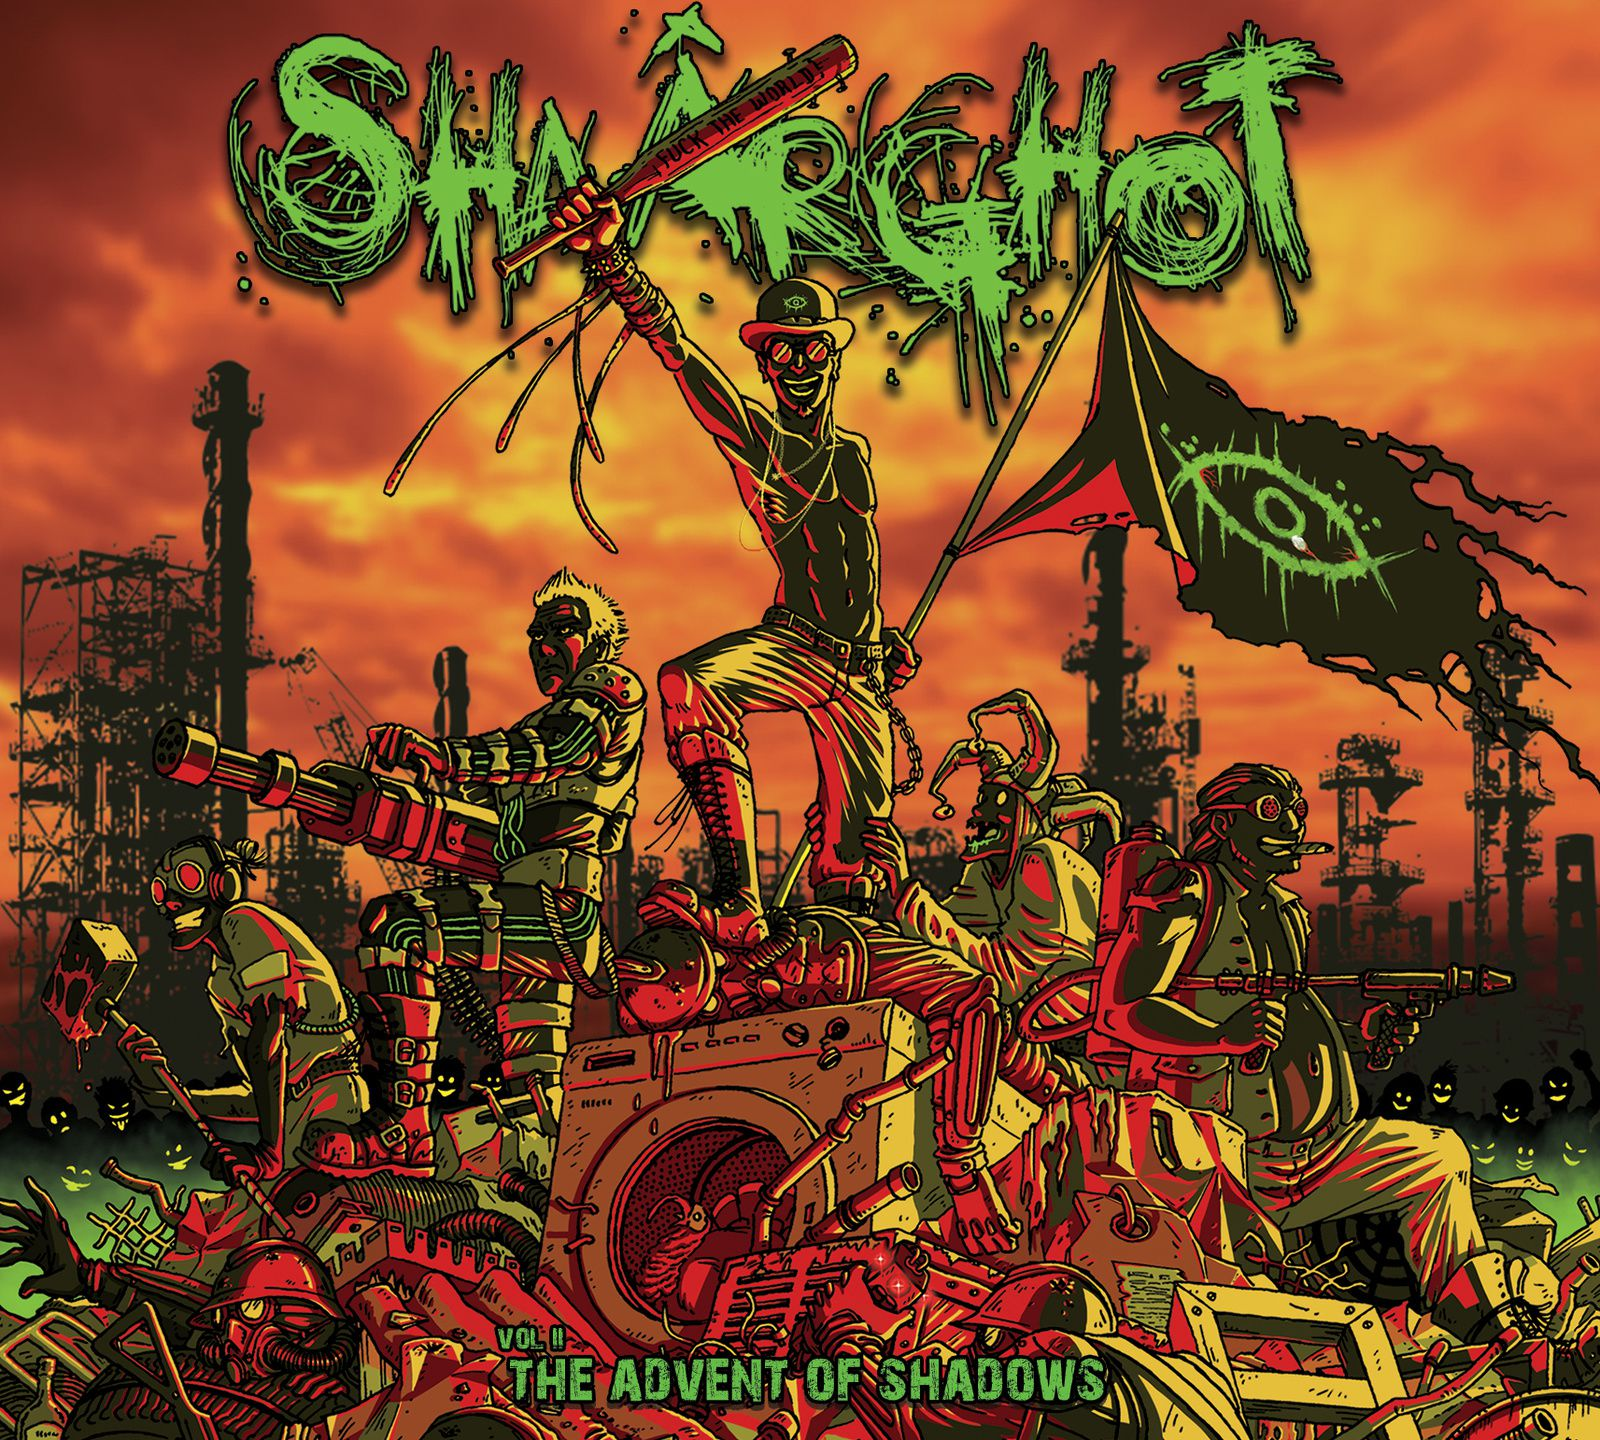 shaârghot volume 2 artwork